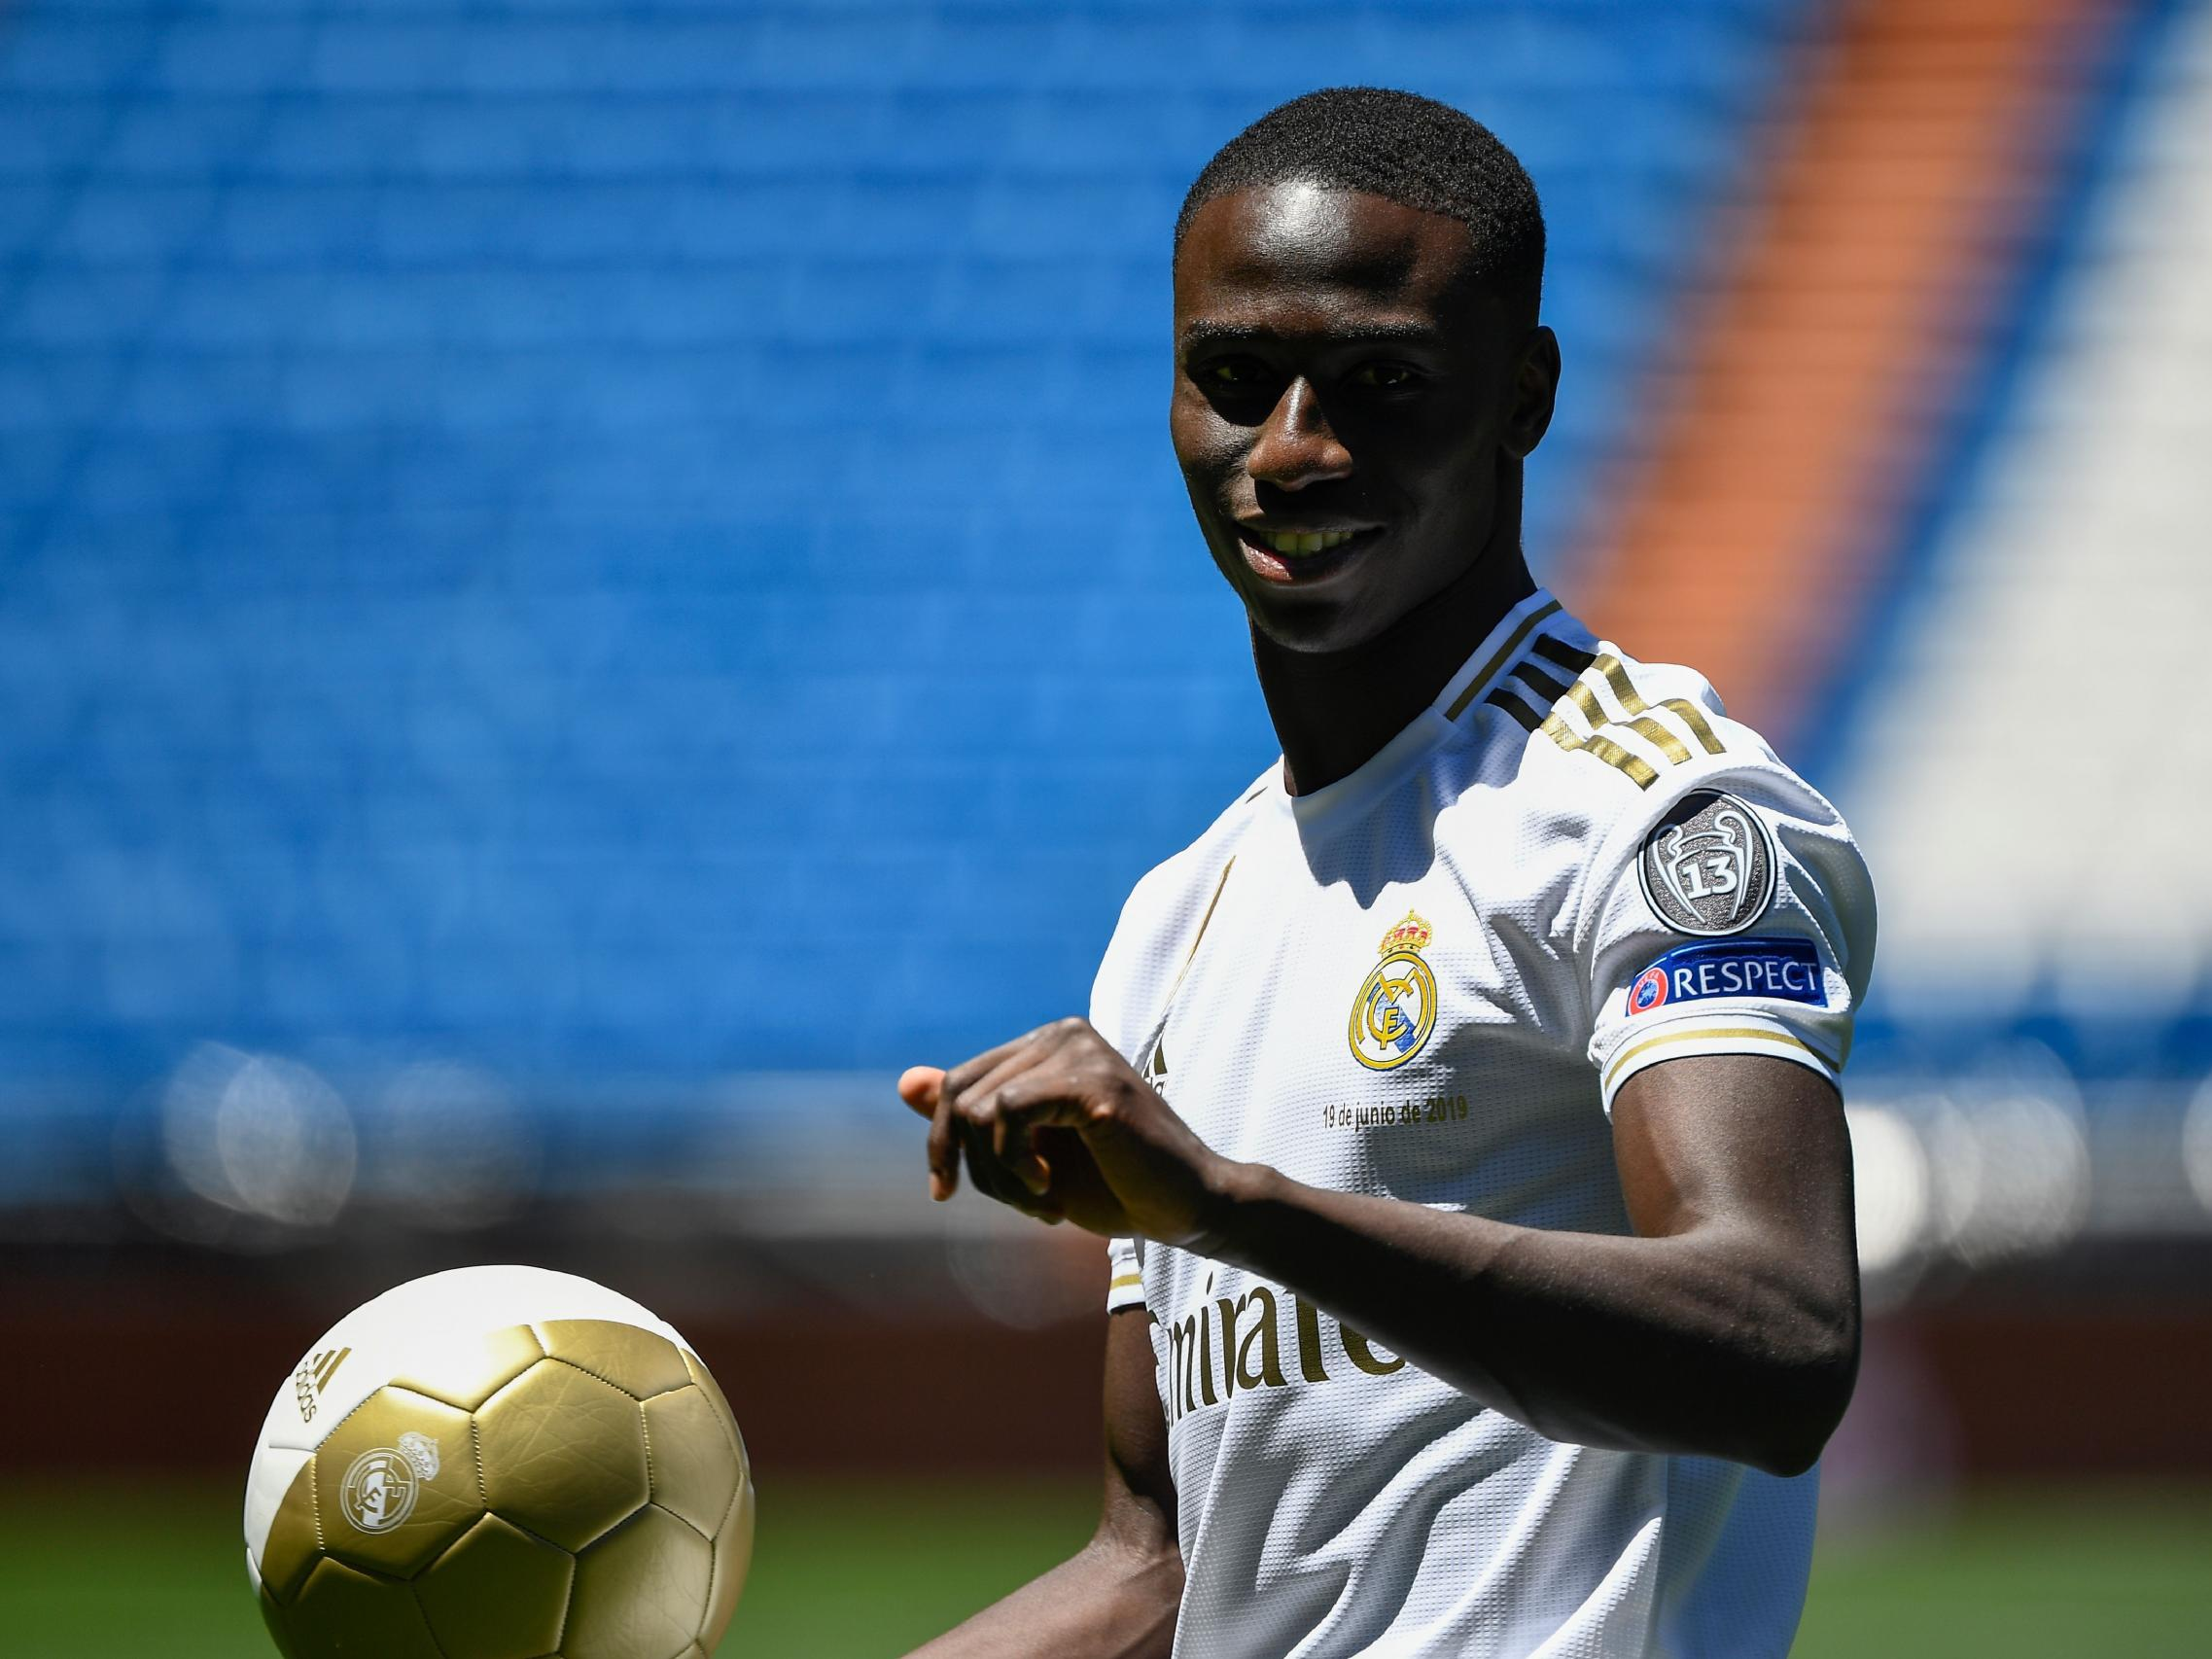 Ferland Mendy: Real Madrid unveil new signing after £49m move